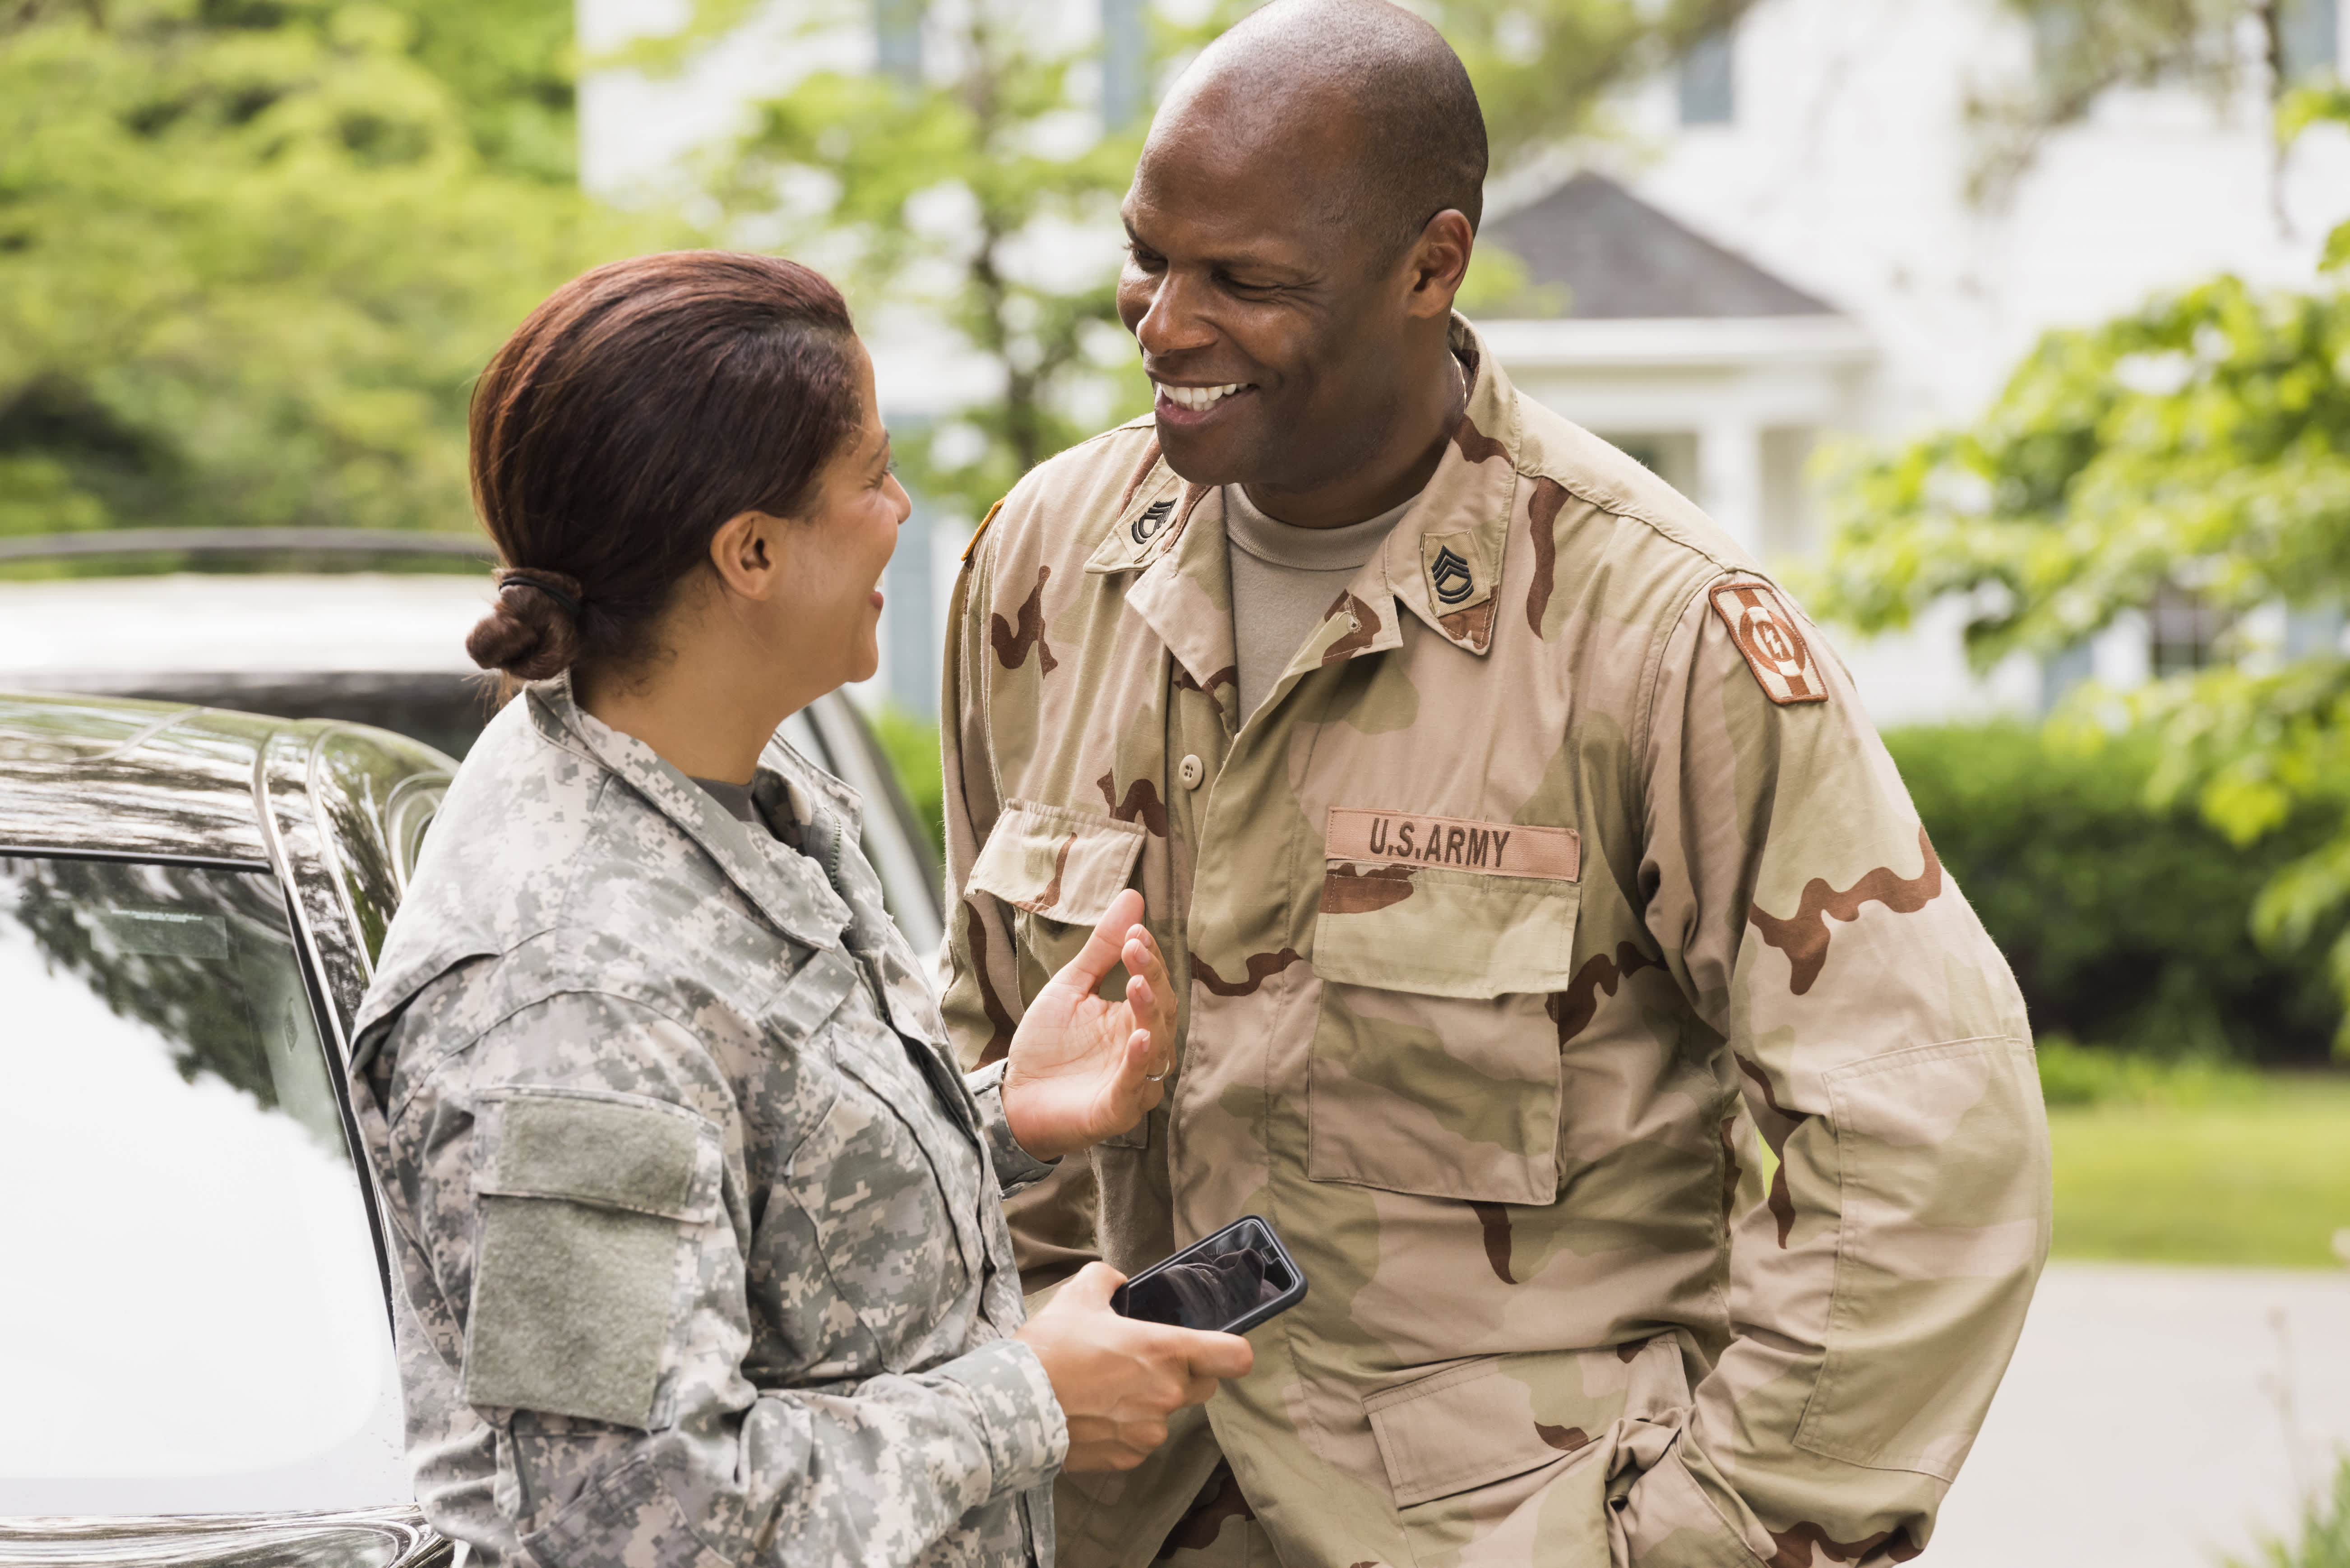 Military members should boost their credit score for a smoother transition into civilian life. Here's how